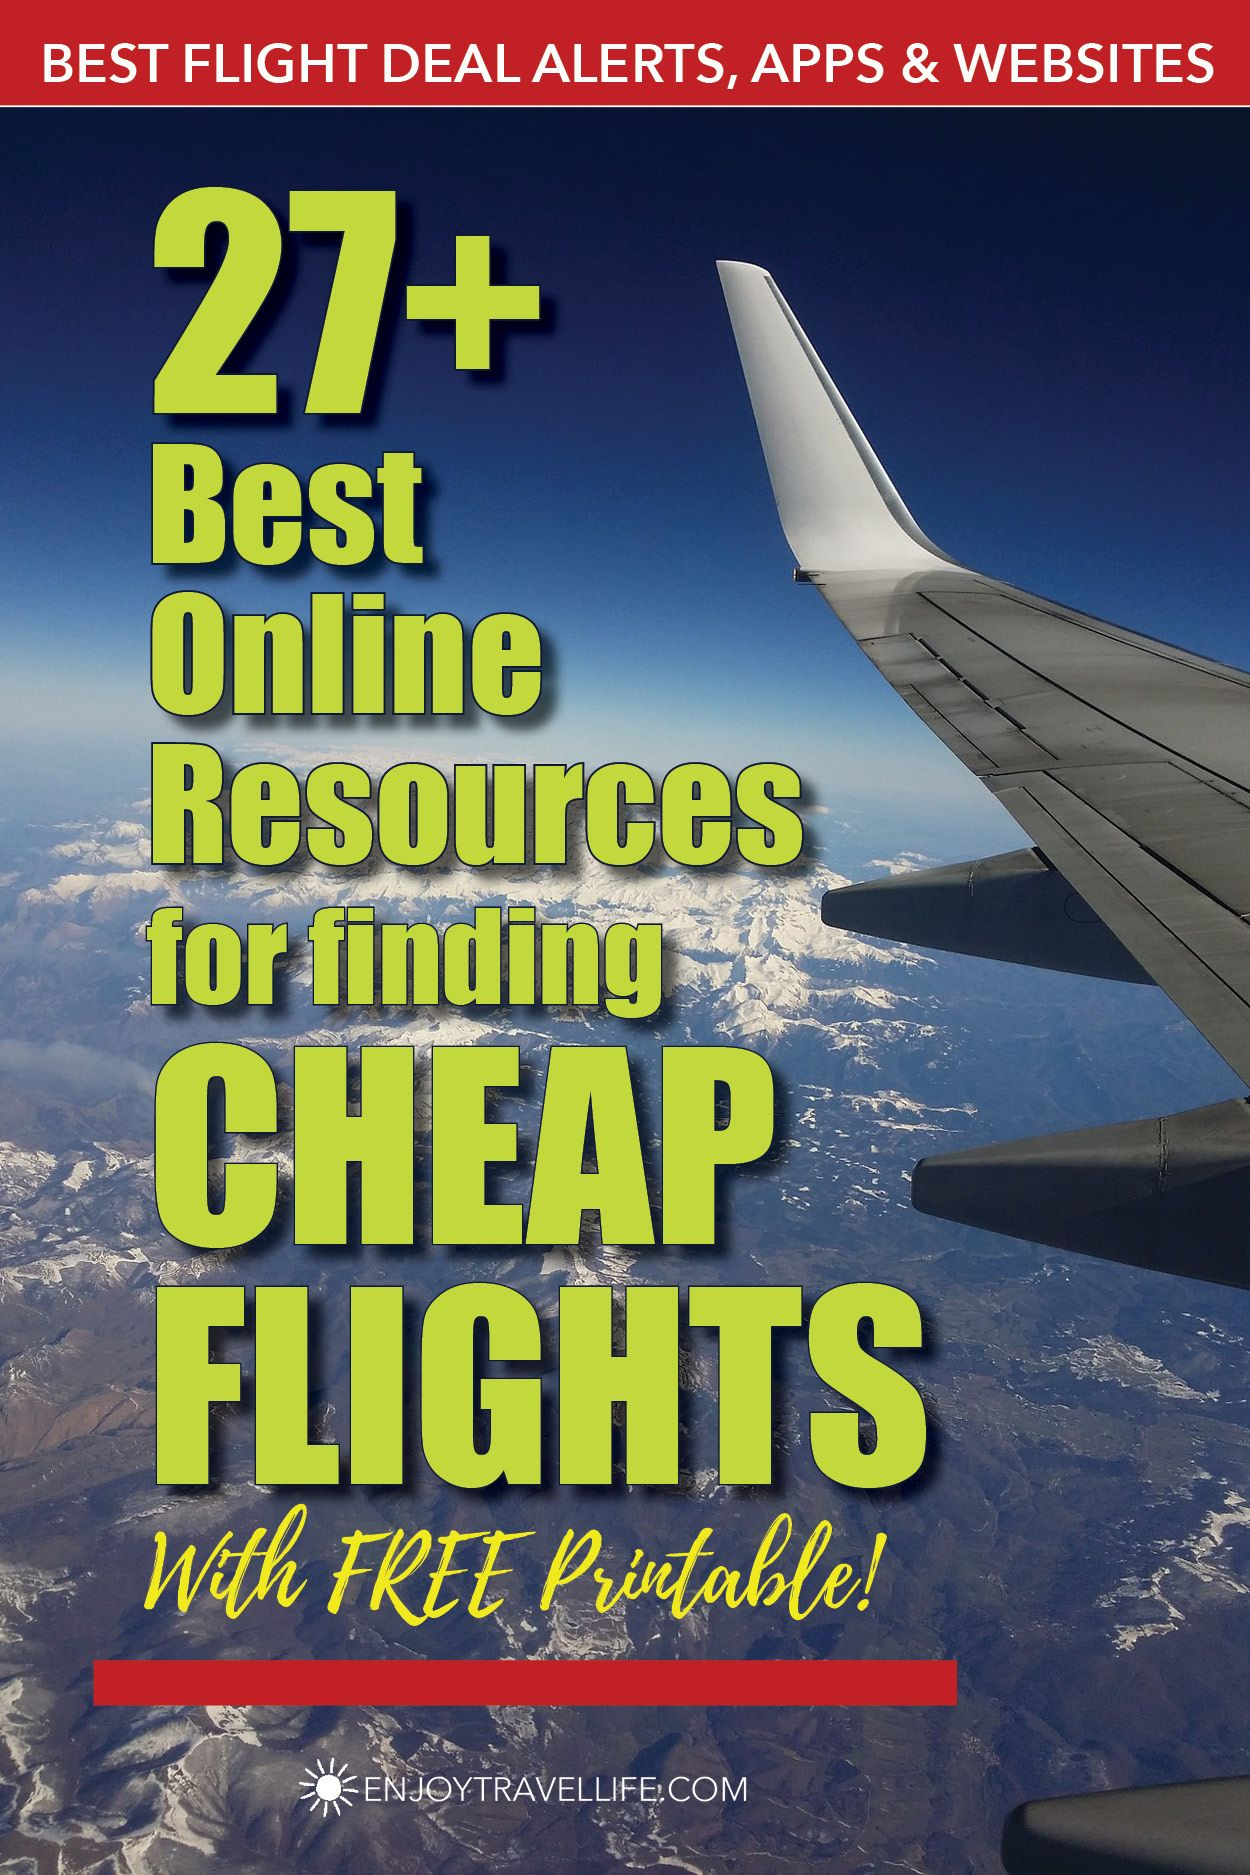 Round-up of the best online resources for finding cheap flights with a free printable. Start using these today to save on your next flight! #budgettravel #cheapflights #enjoytravellife #travelapps